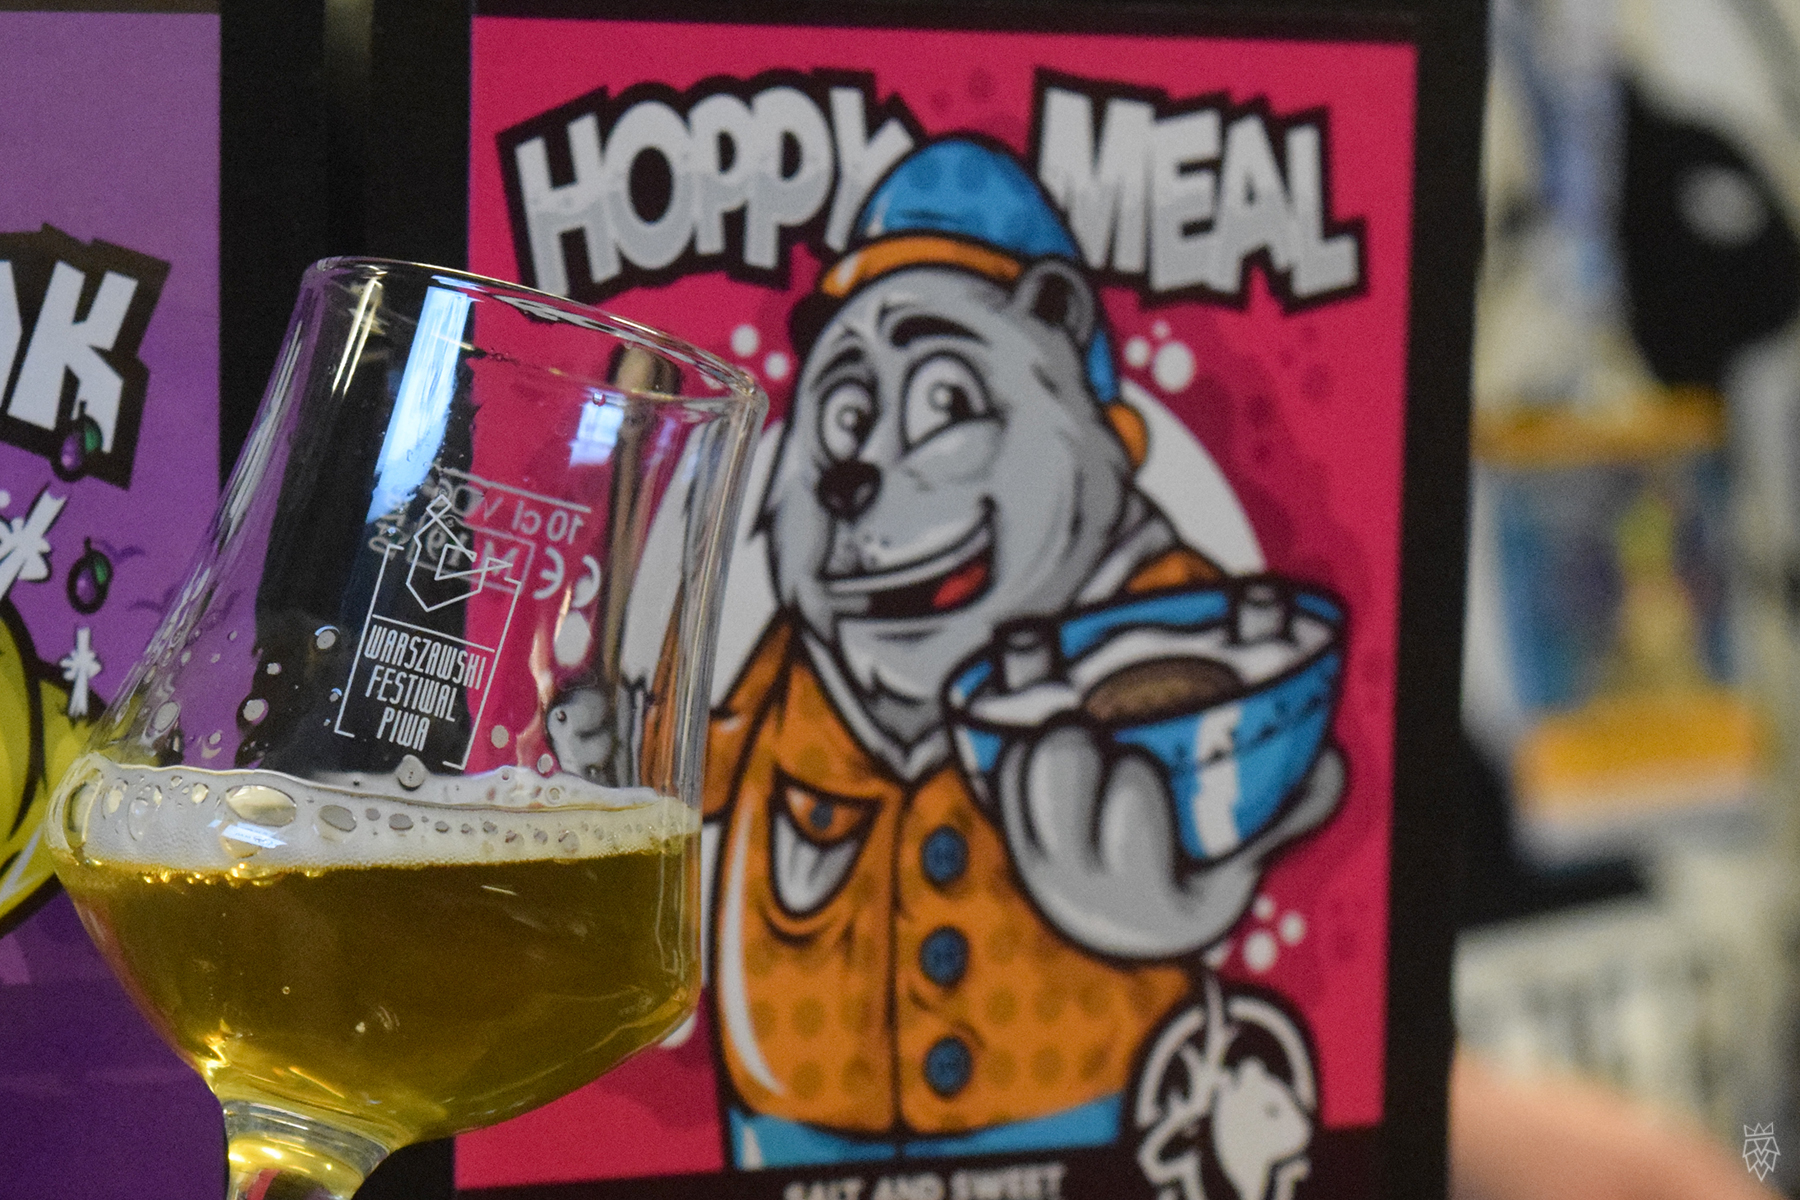 Hoppy Meal WFP